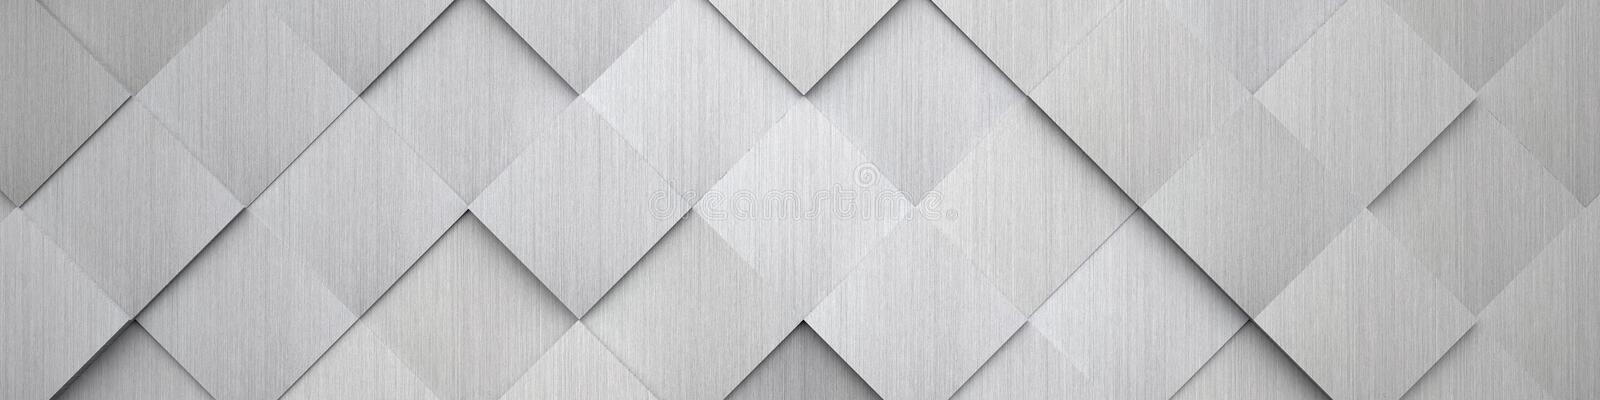 Tiled Metal Texture (Website Head). A high detail tiled metal texture (can be used as a website head stock illustration